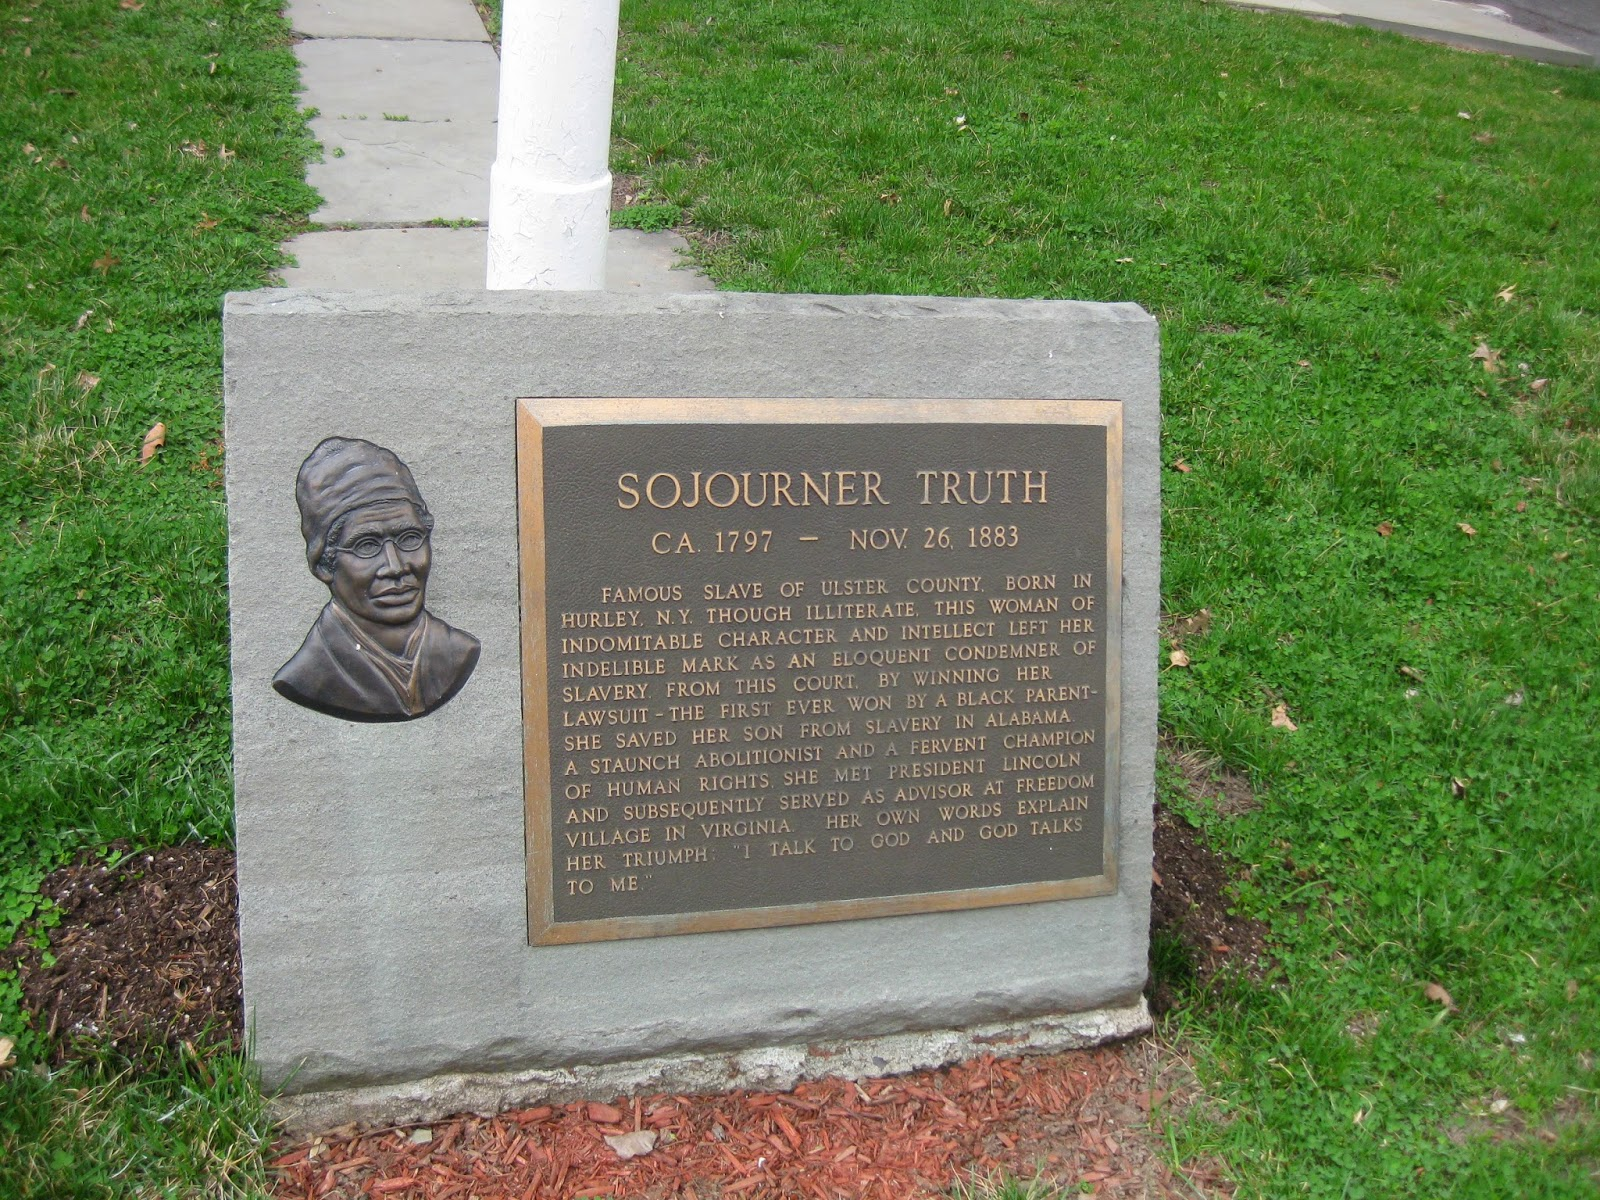 The Sojourner Truth memorial outside the Ulster County Courthouse